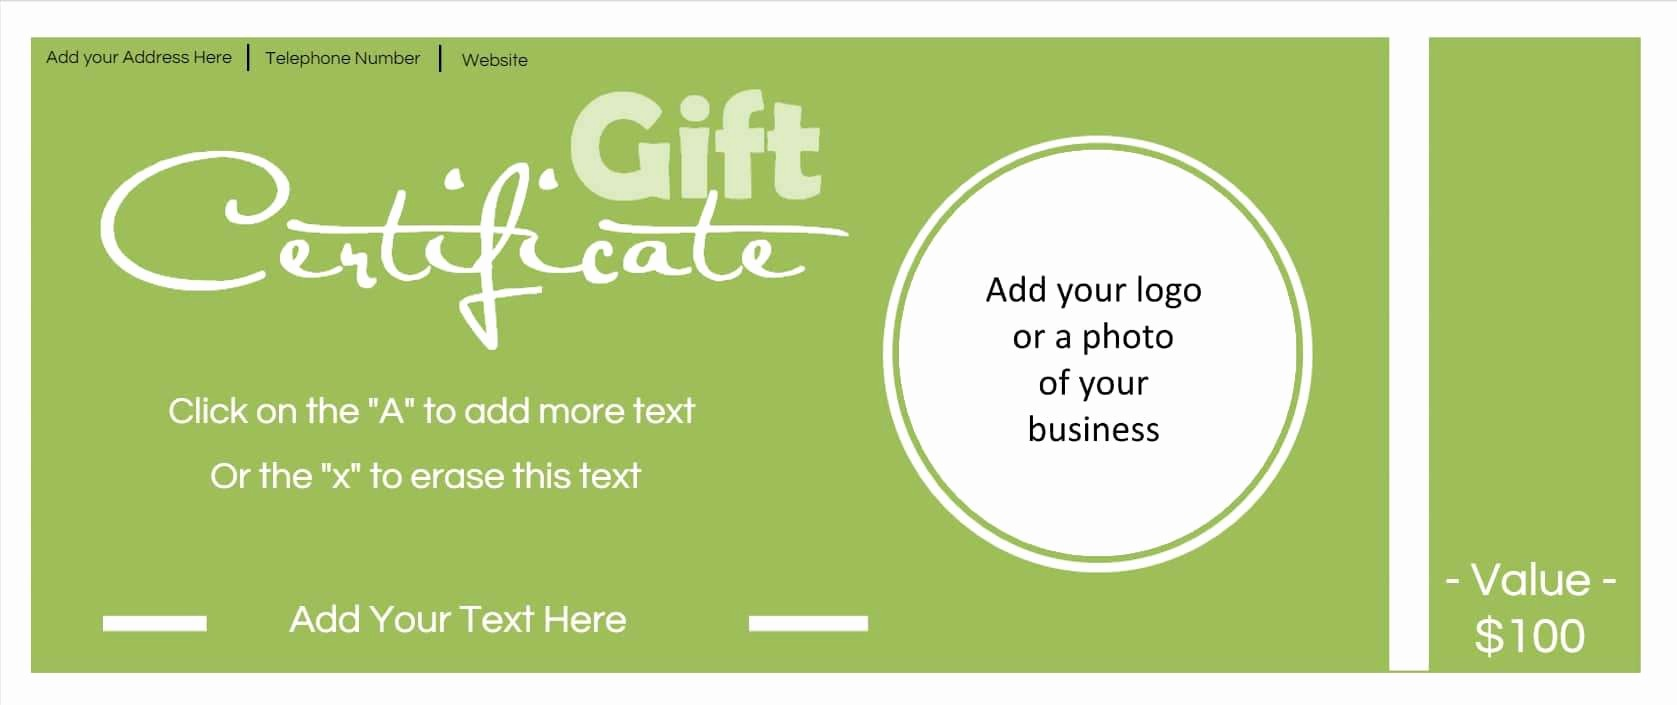 Free Customizable Printable Gift Certificates Awesome Gift Certificate Template with Logo